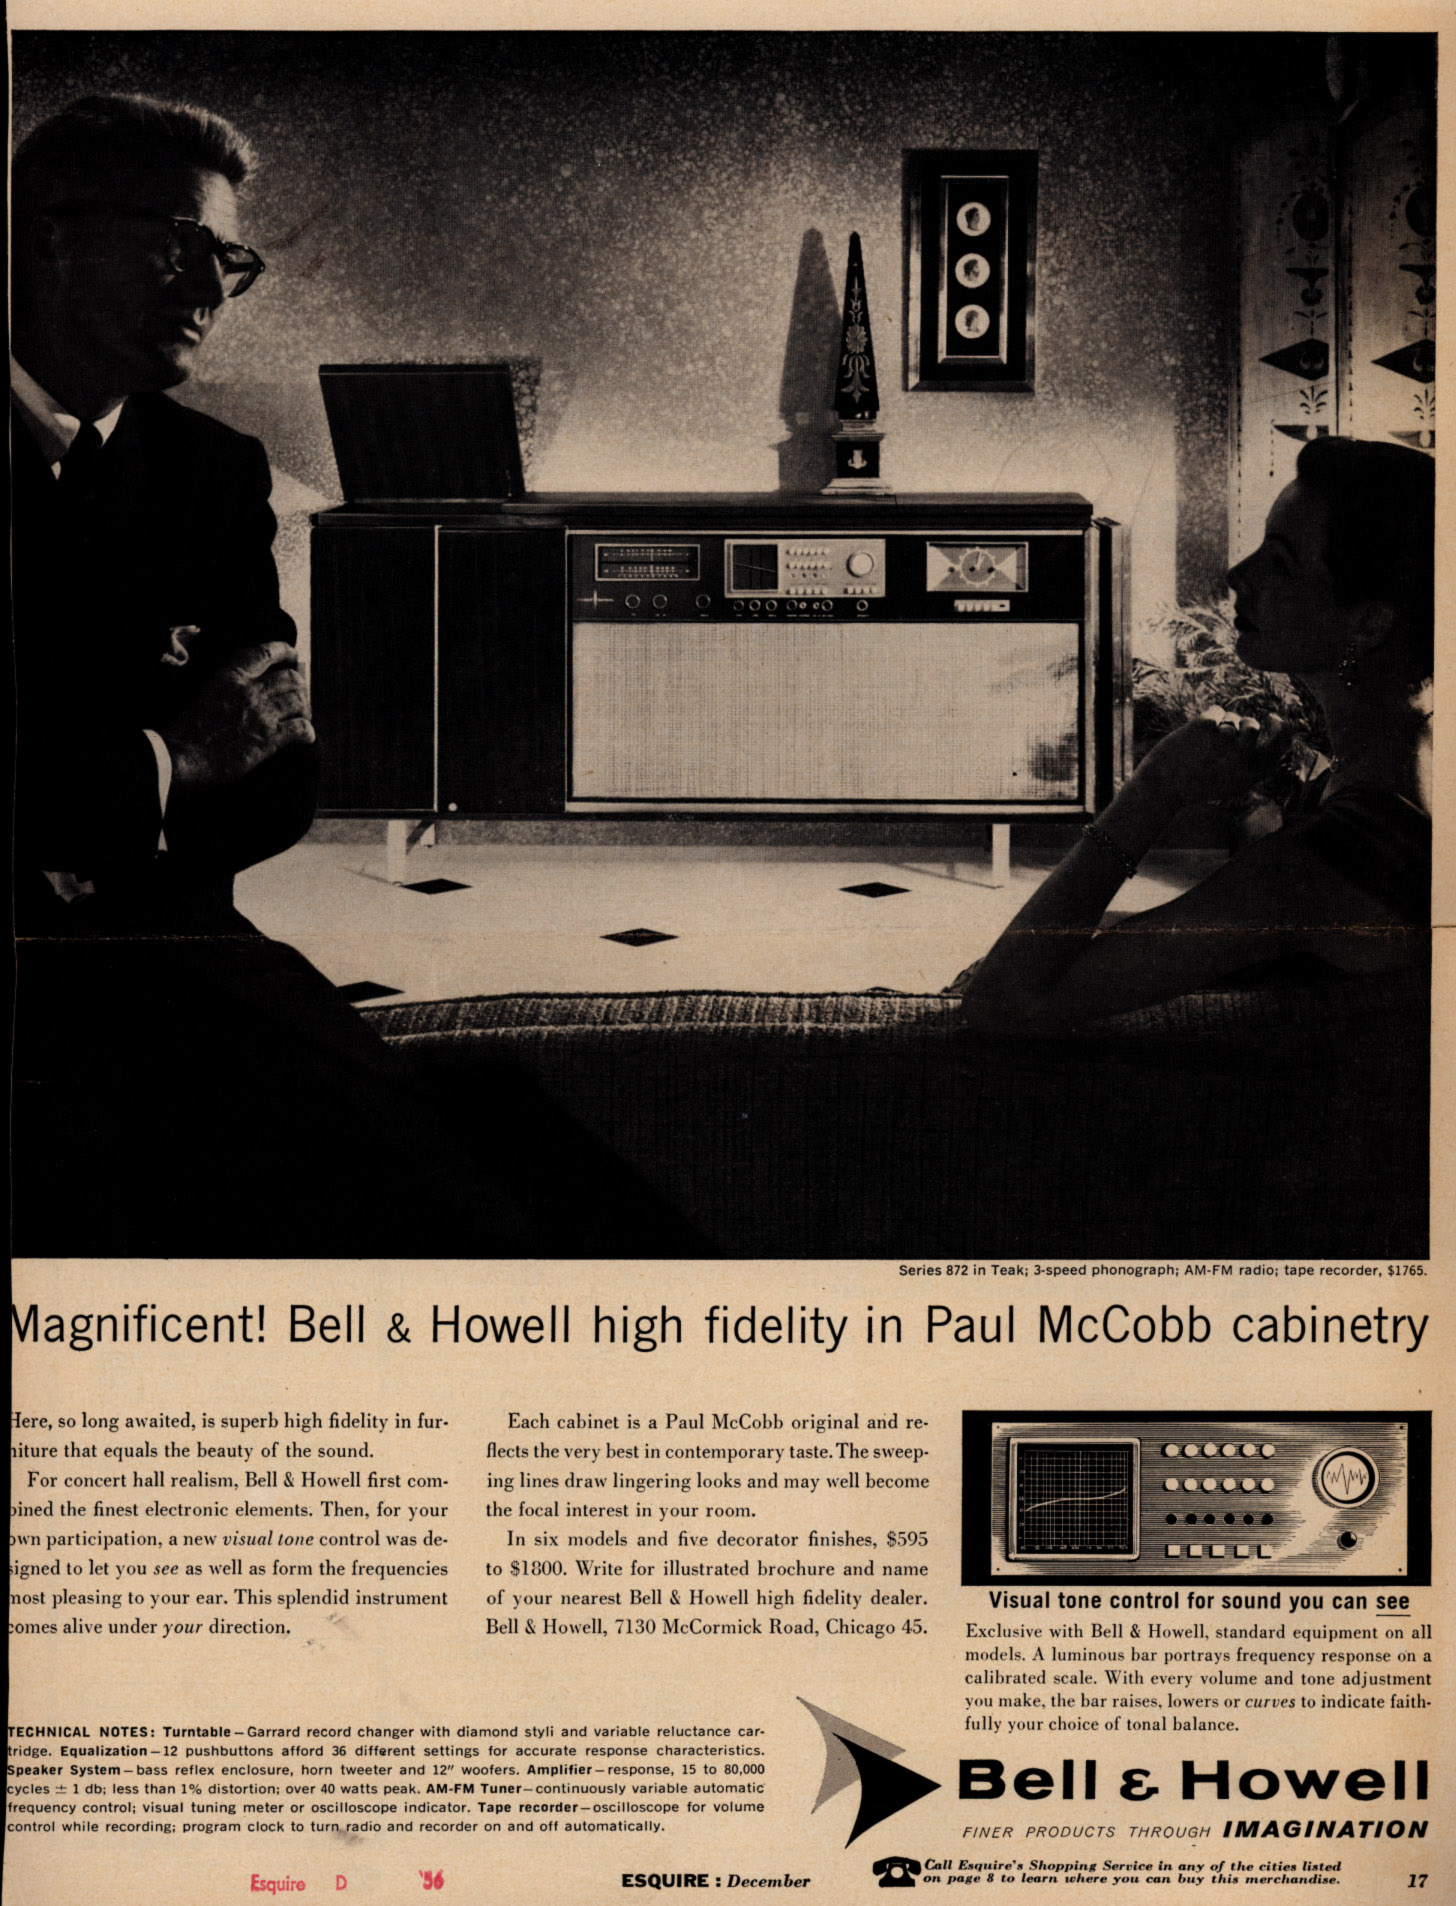 Magnificent_Bell__Howell_High_Fidelity_in_Paul_McCobb_Cabinetry